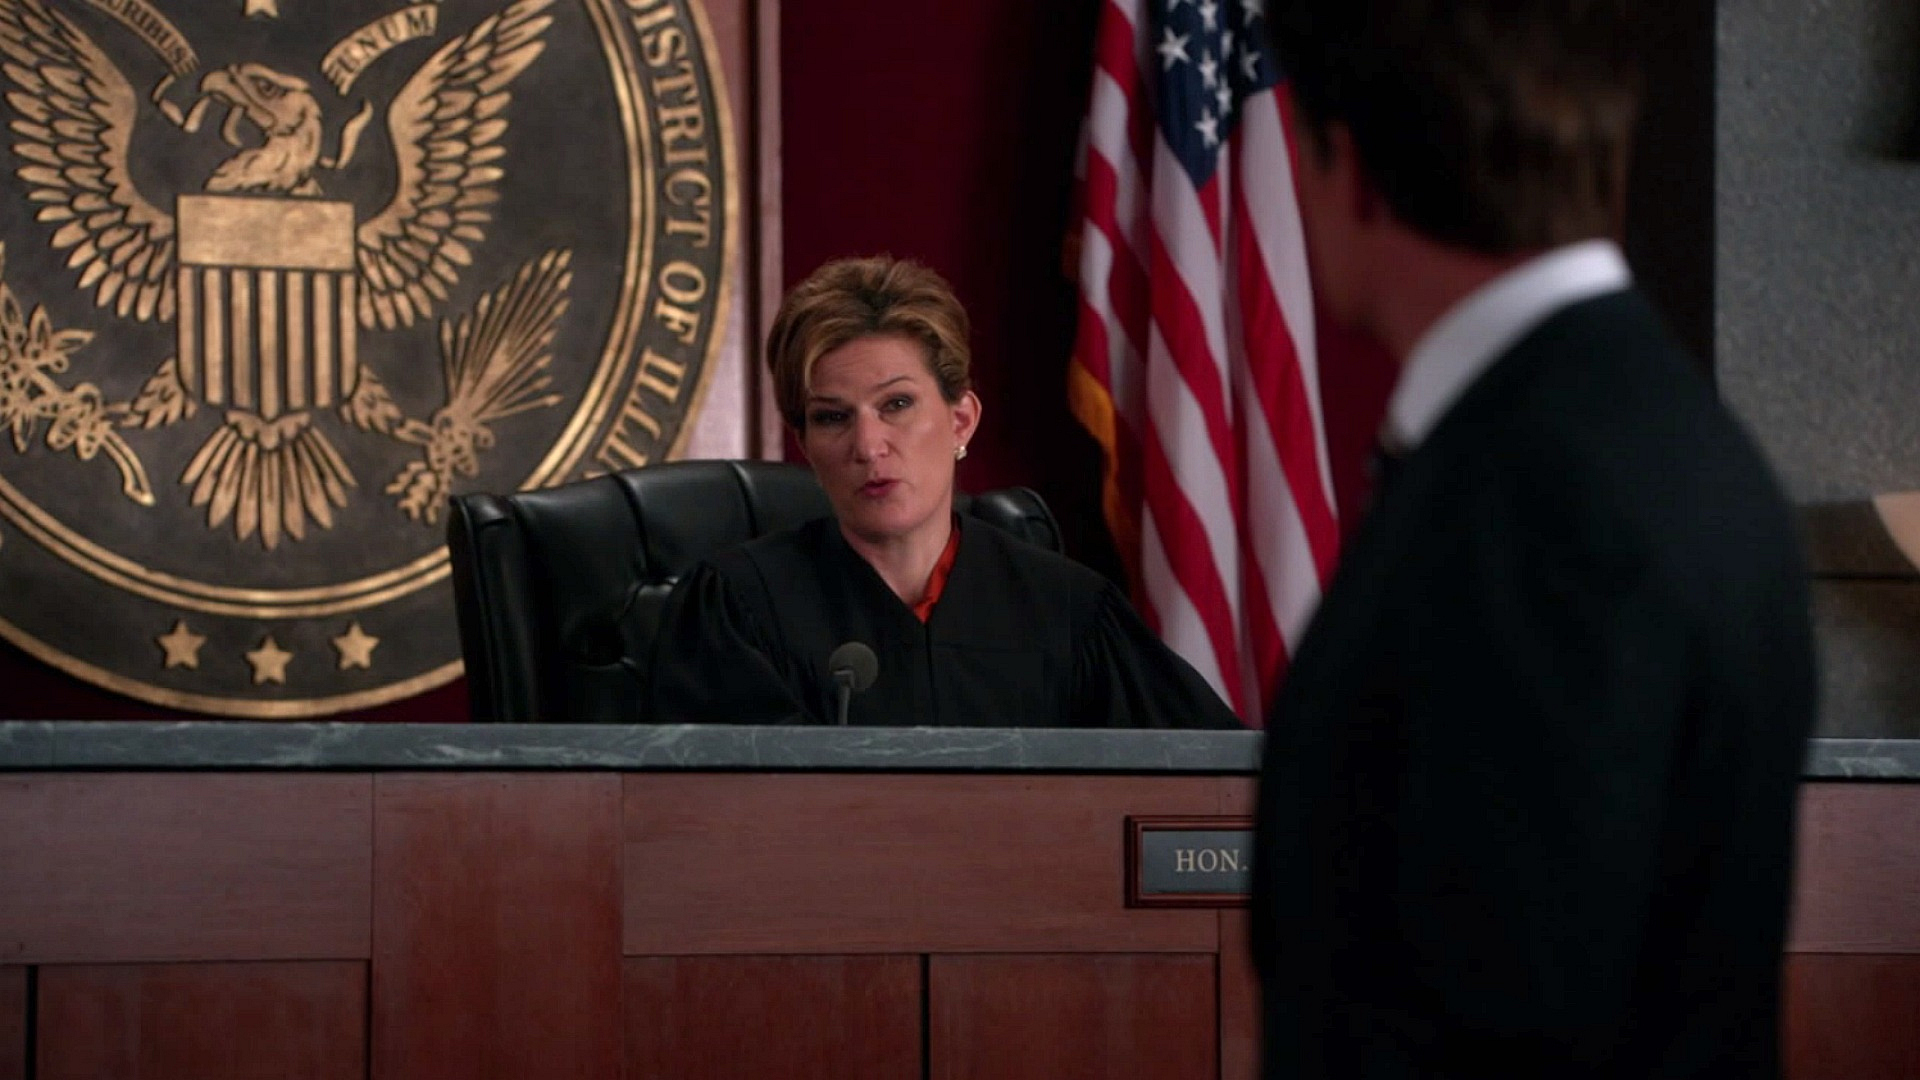 Judge Patrice Lessner (Ana Gasteyer)